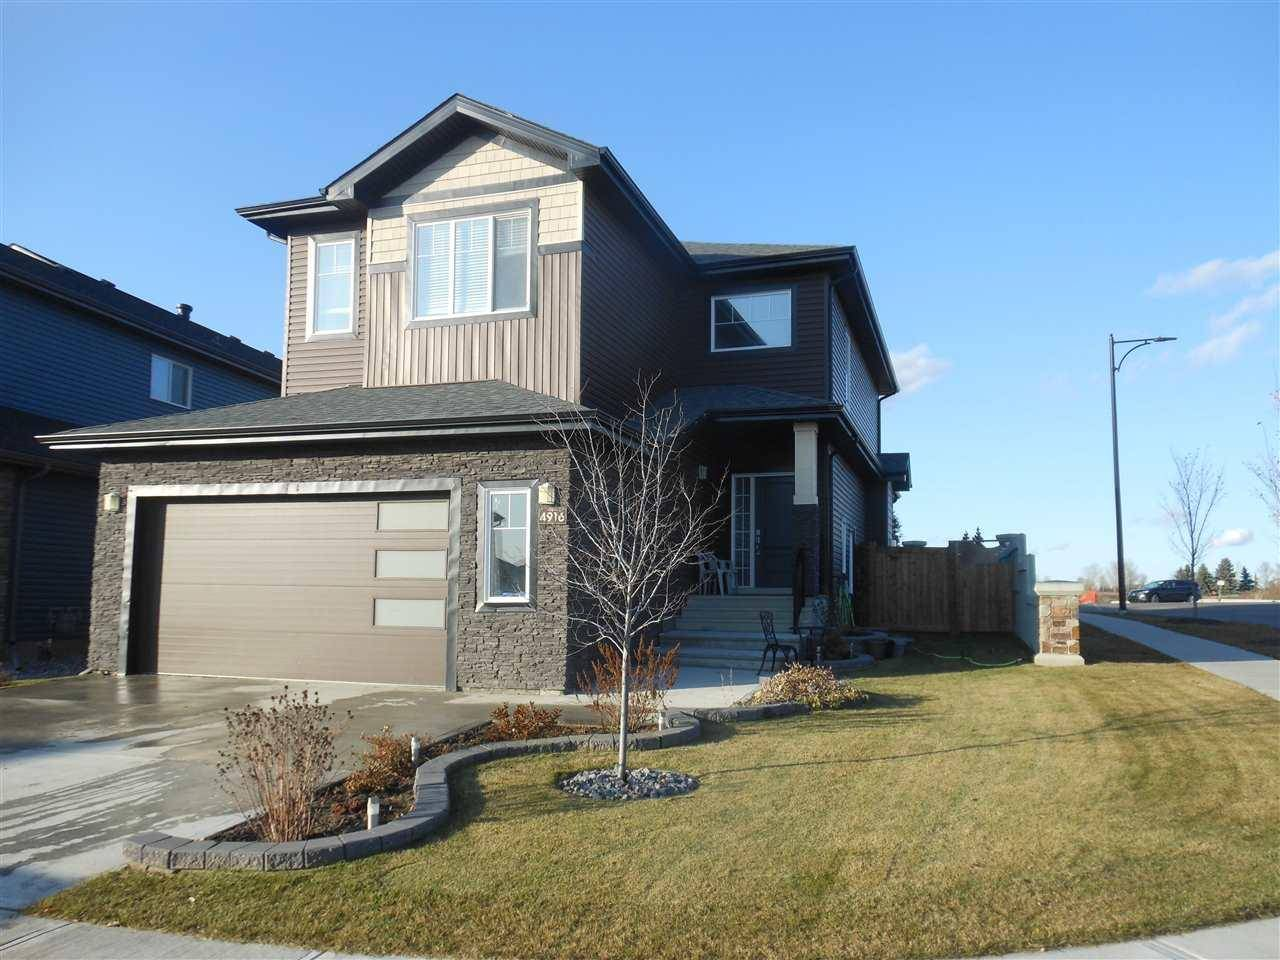 House for sale at 4916 38 St Beaumont Alberta - MLS: E4178526